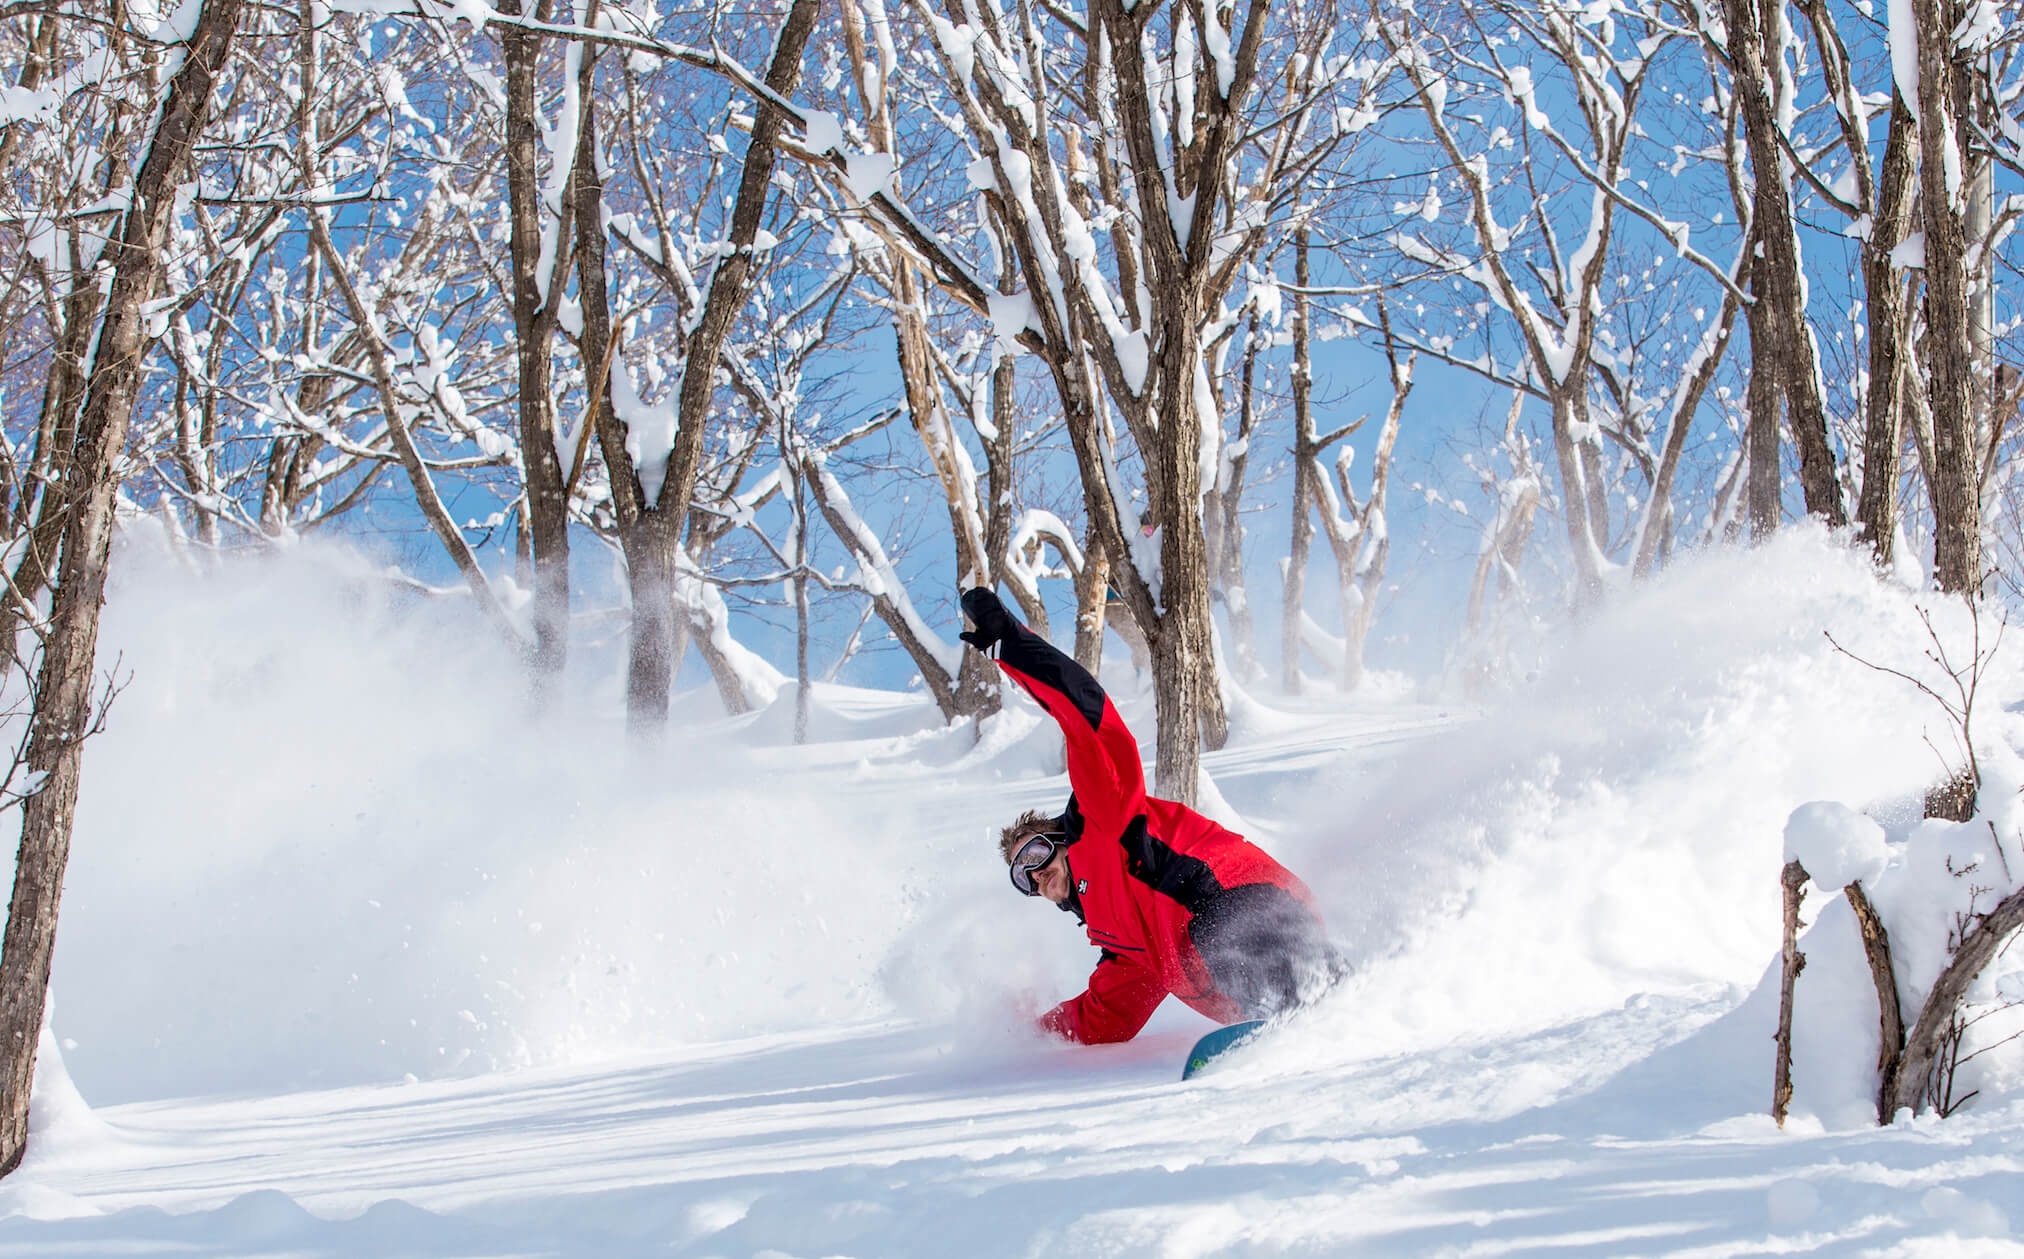 Powder turns in Nozawa Onsen during Powder Culture Tour with First Tours